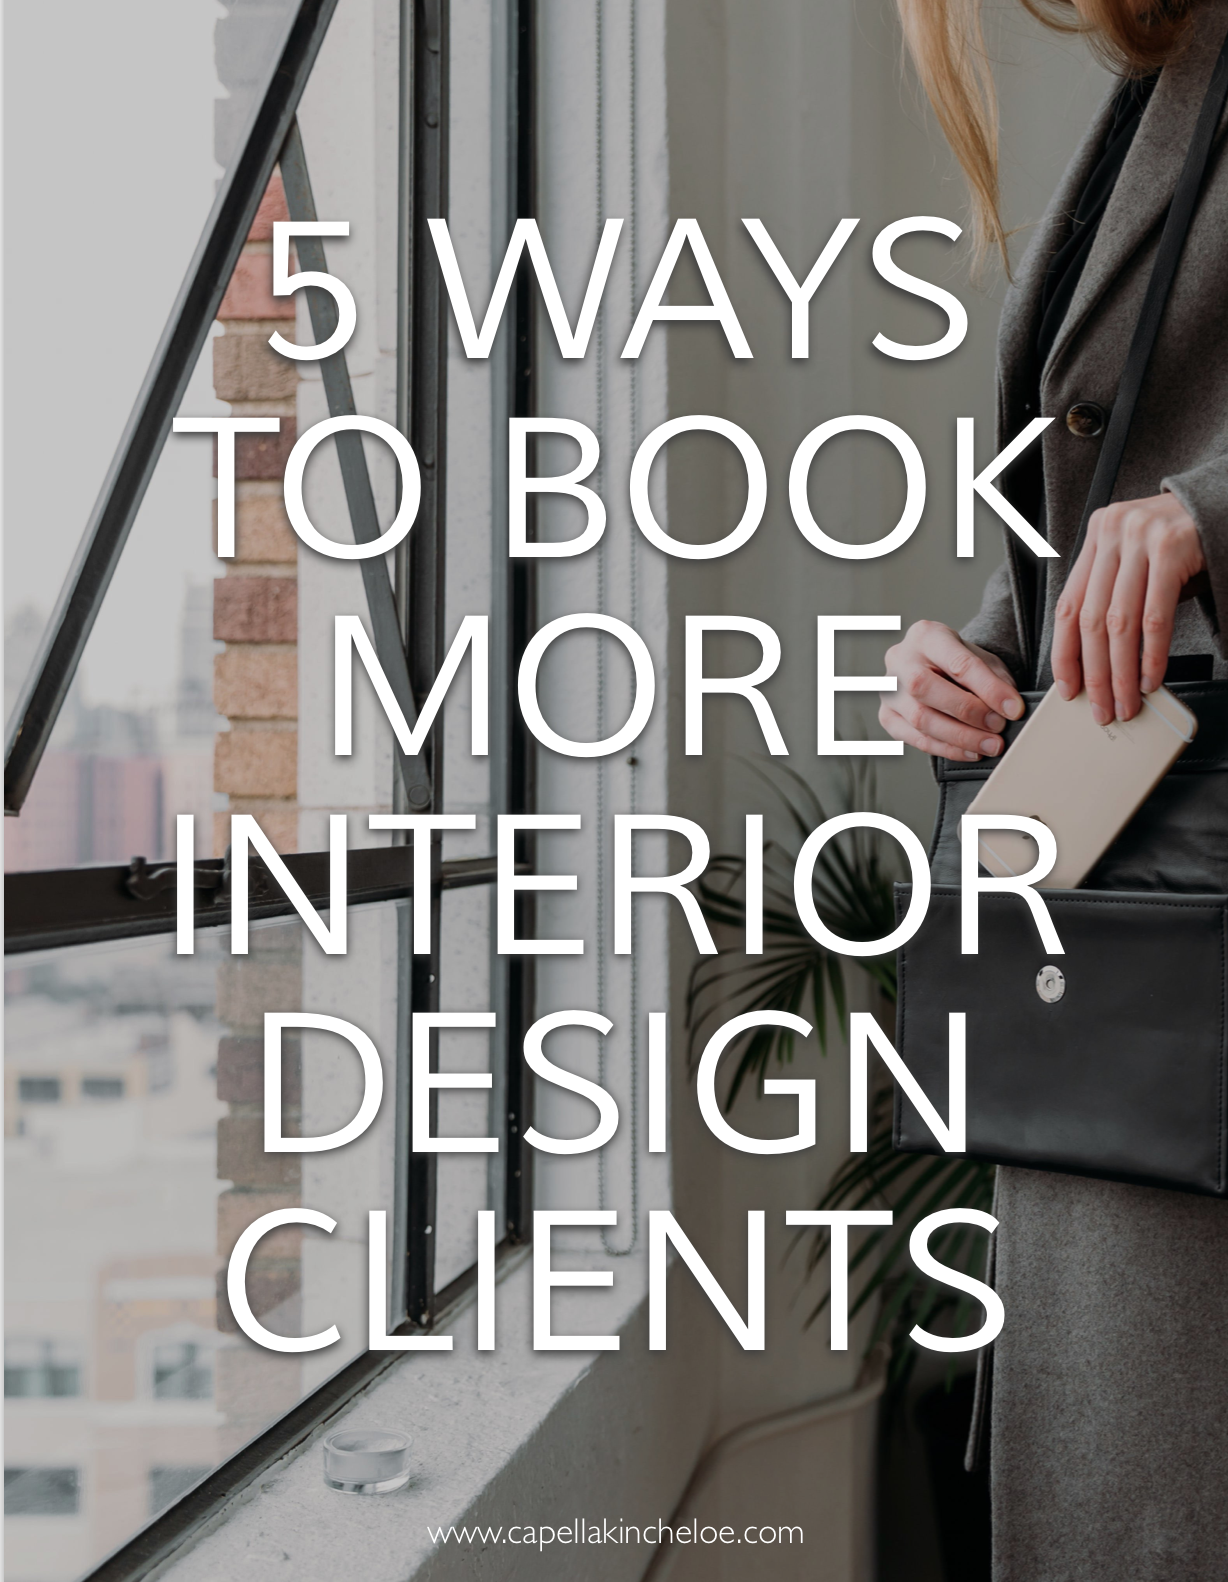 Looking to get more interior design clients? Here are the 5 ways to do it. #interiordesignbusiness #CKTRADESECRETS